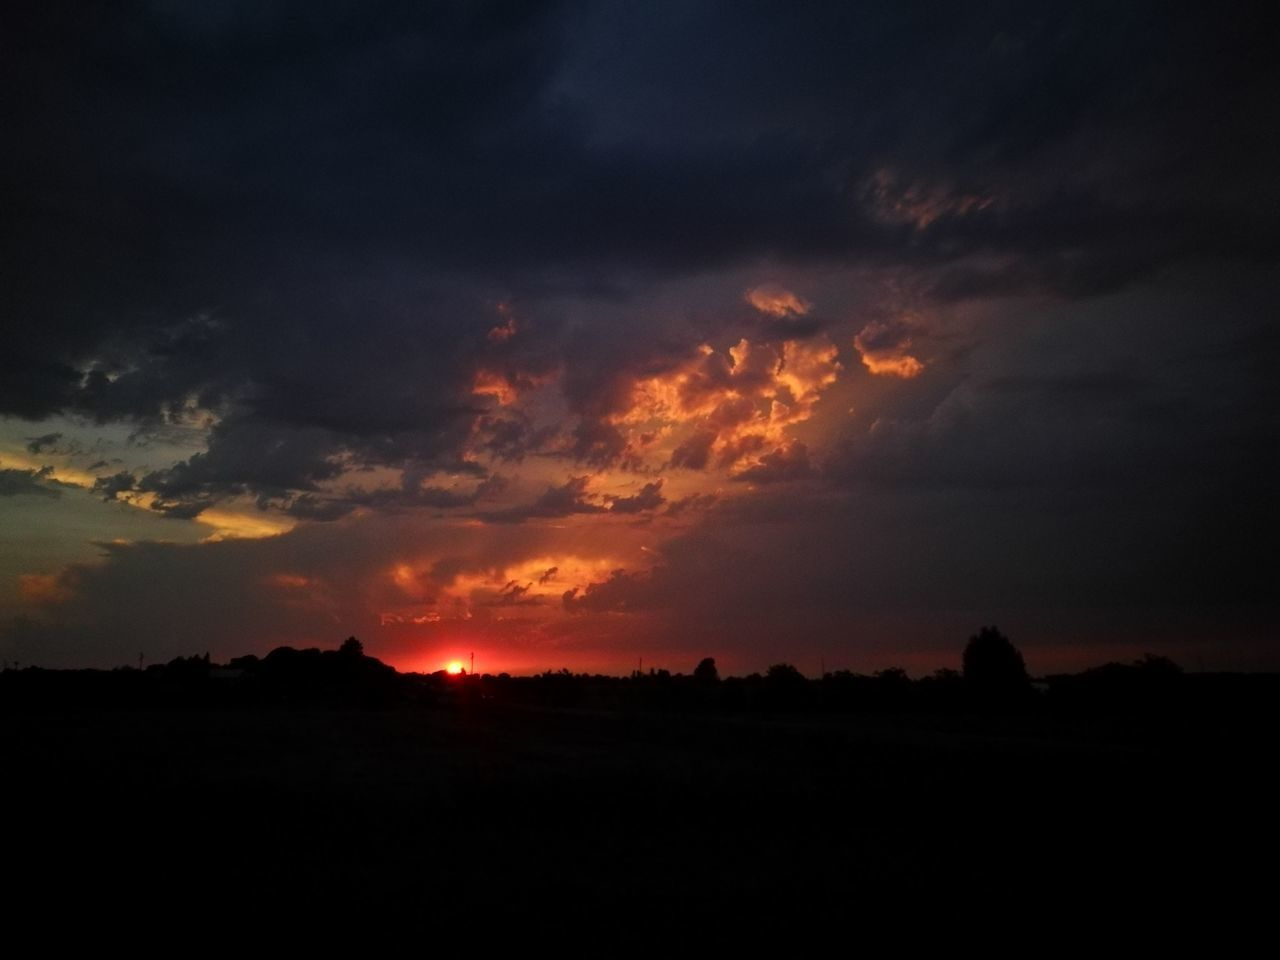 sunset, silhouette, sky, nature, landscape, beauty in nature, no people, scenics, outdoors